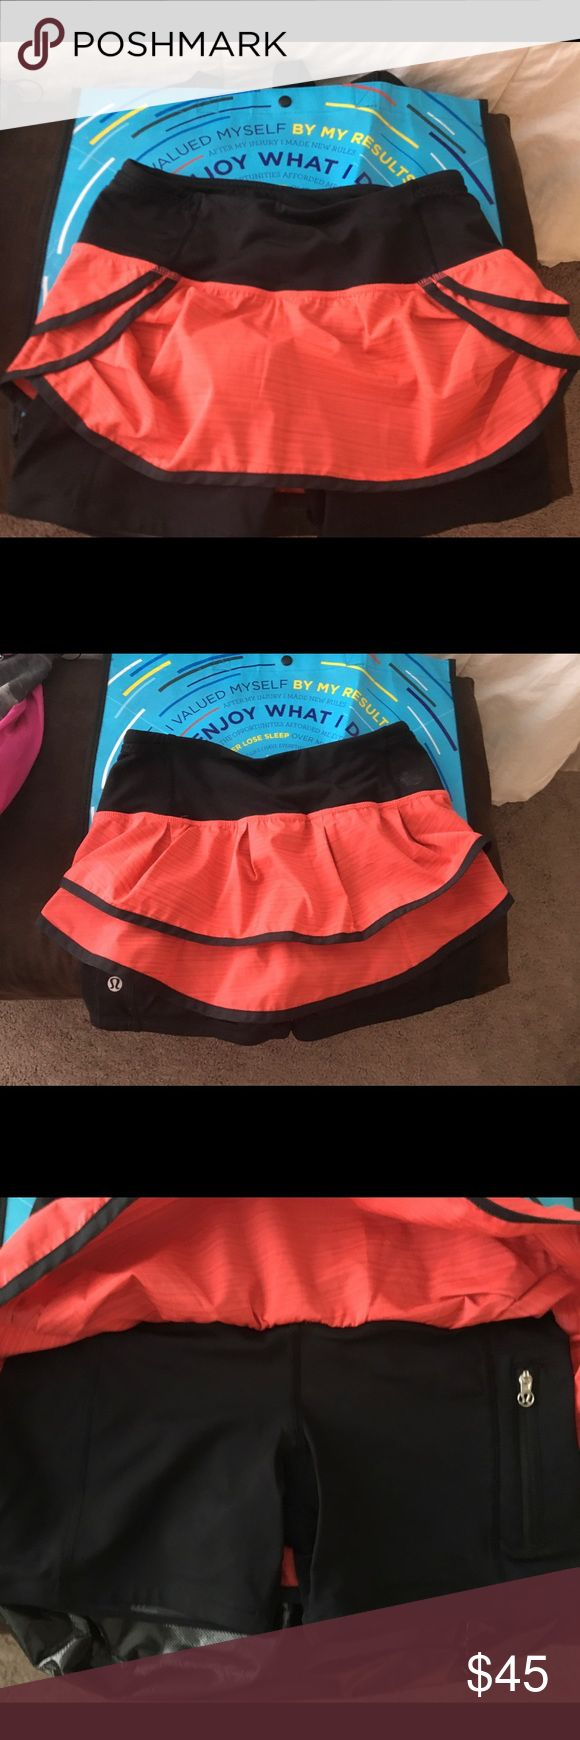 Lululemon running skirts In great condition running skirt no rips, tears or snags lululemon athletica Skirts Mini